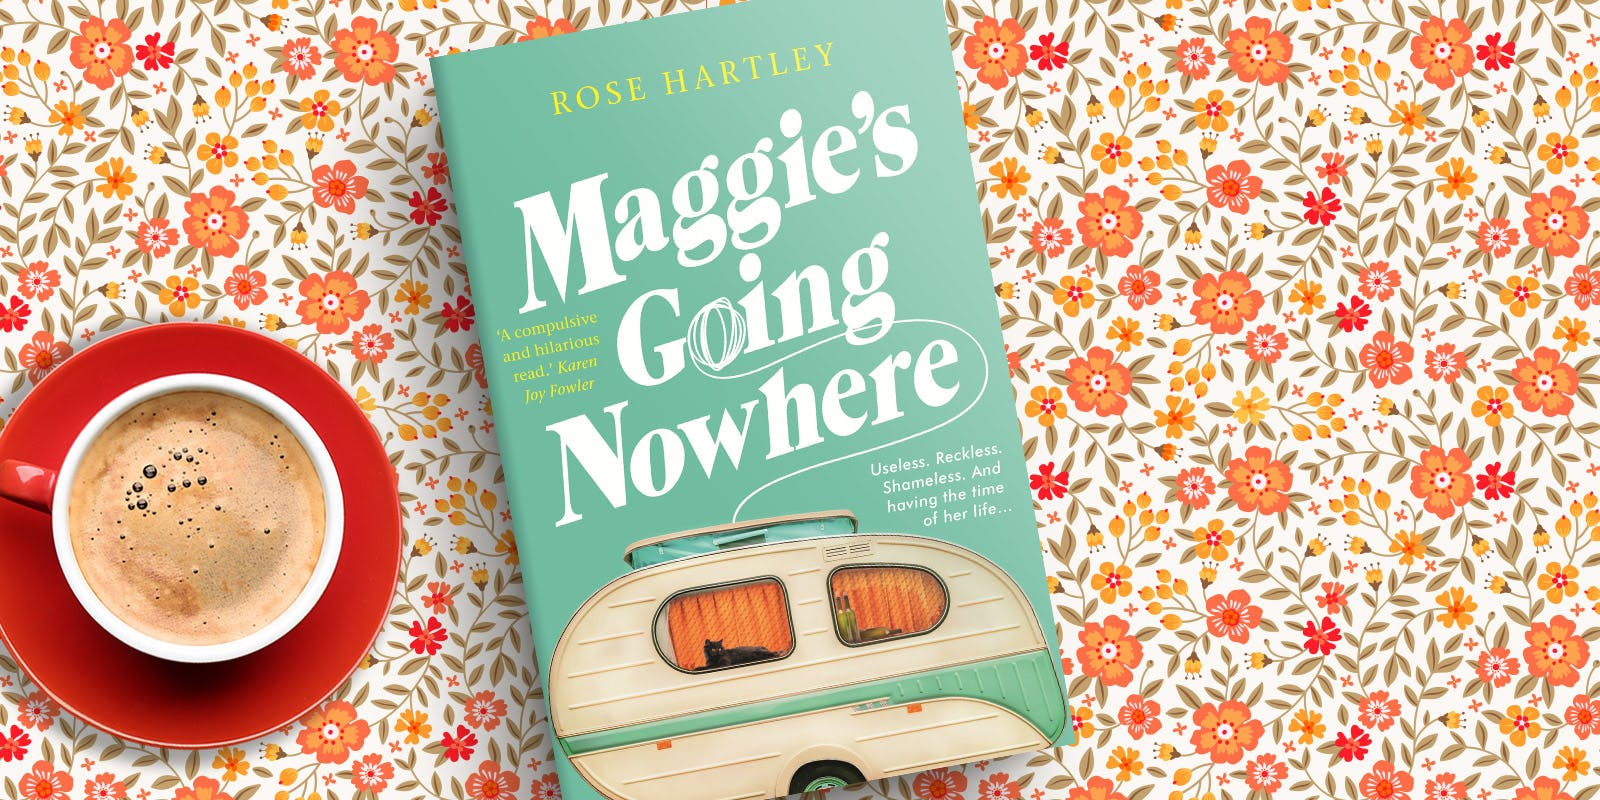 Maggie's Going Nowhere book club notes